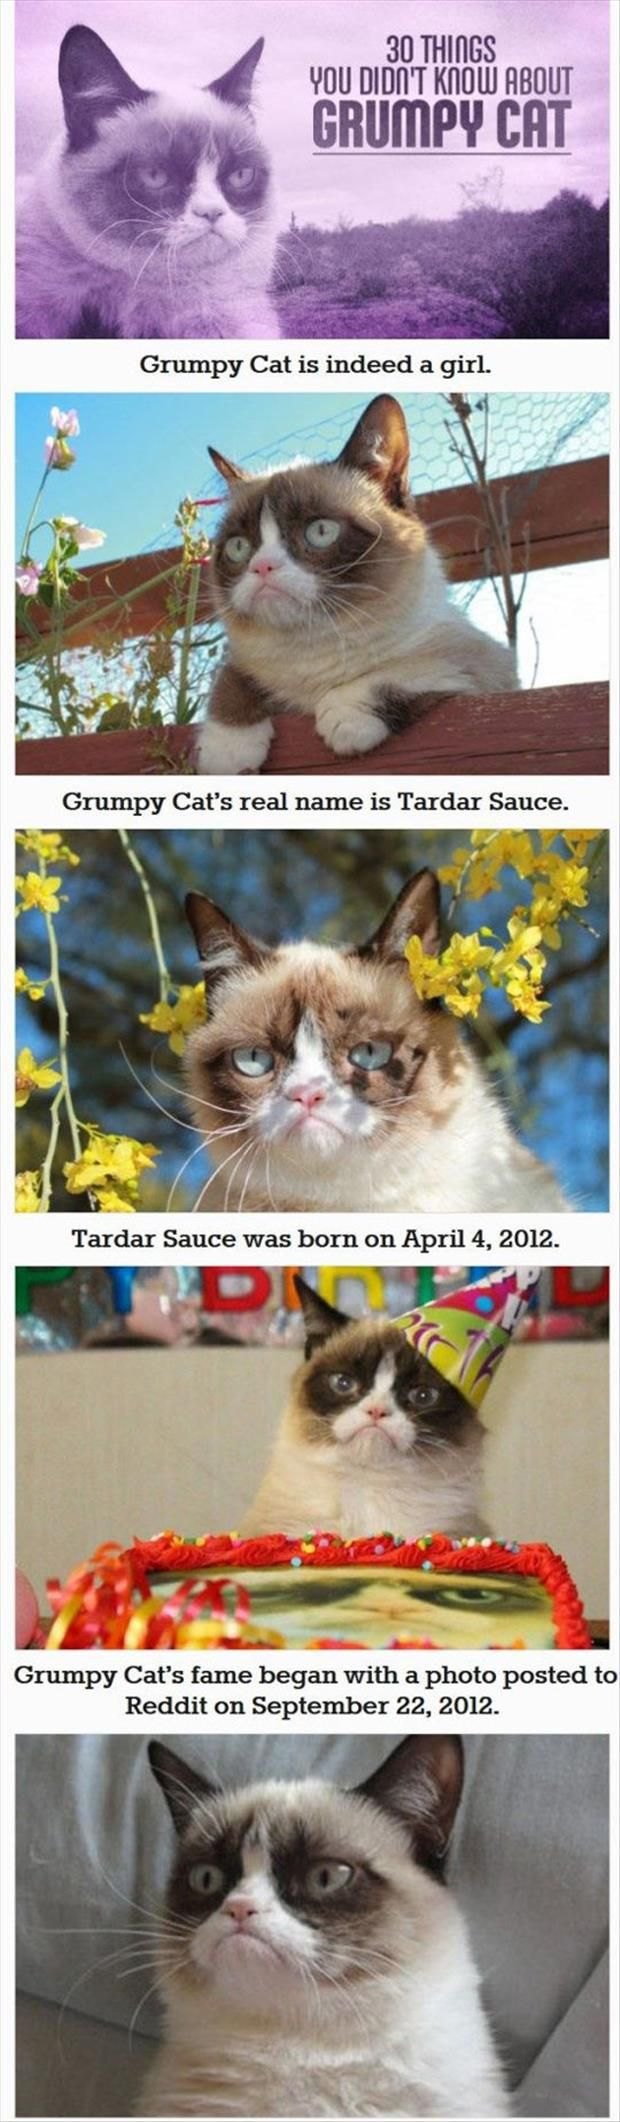 Dump A Day 30 Things You Probably Didn't Know About Grumpy Cat